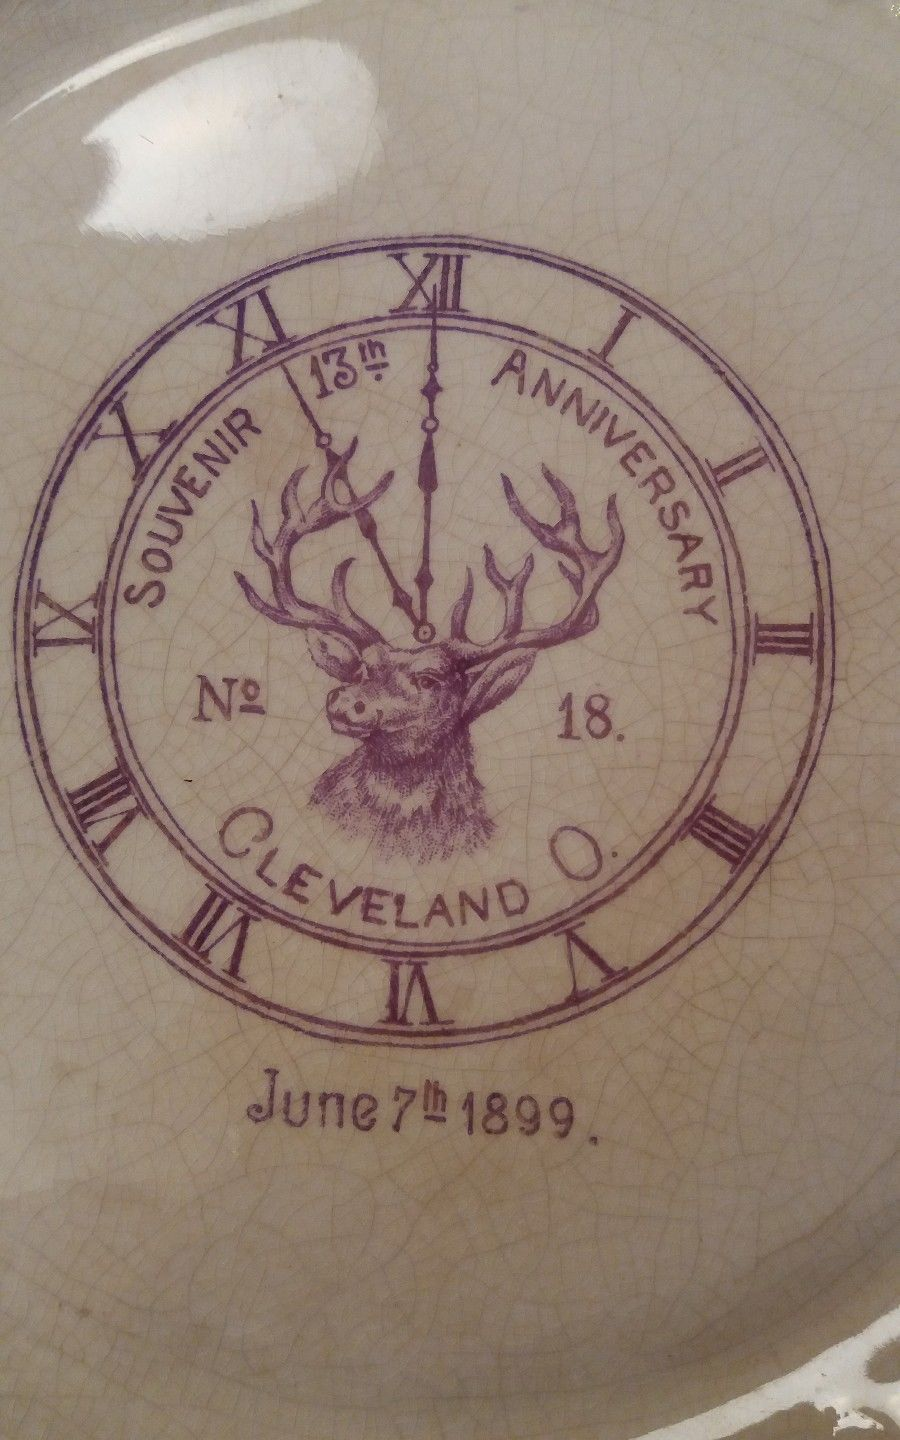 Antique Elk Lodge Dresden Souvenir Plate 13th Anniversry Cleveland OH No. 18 lod